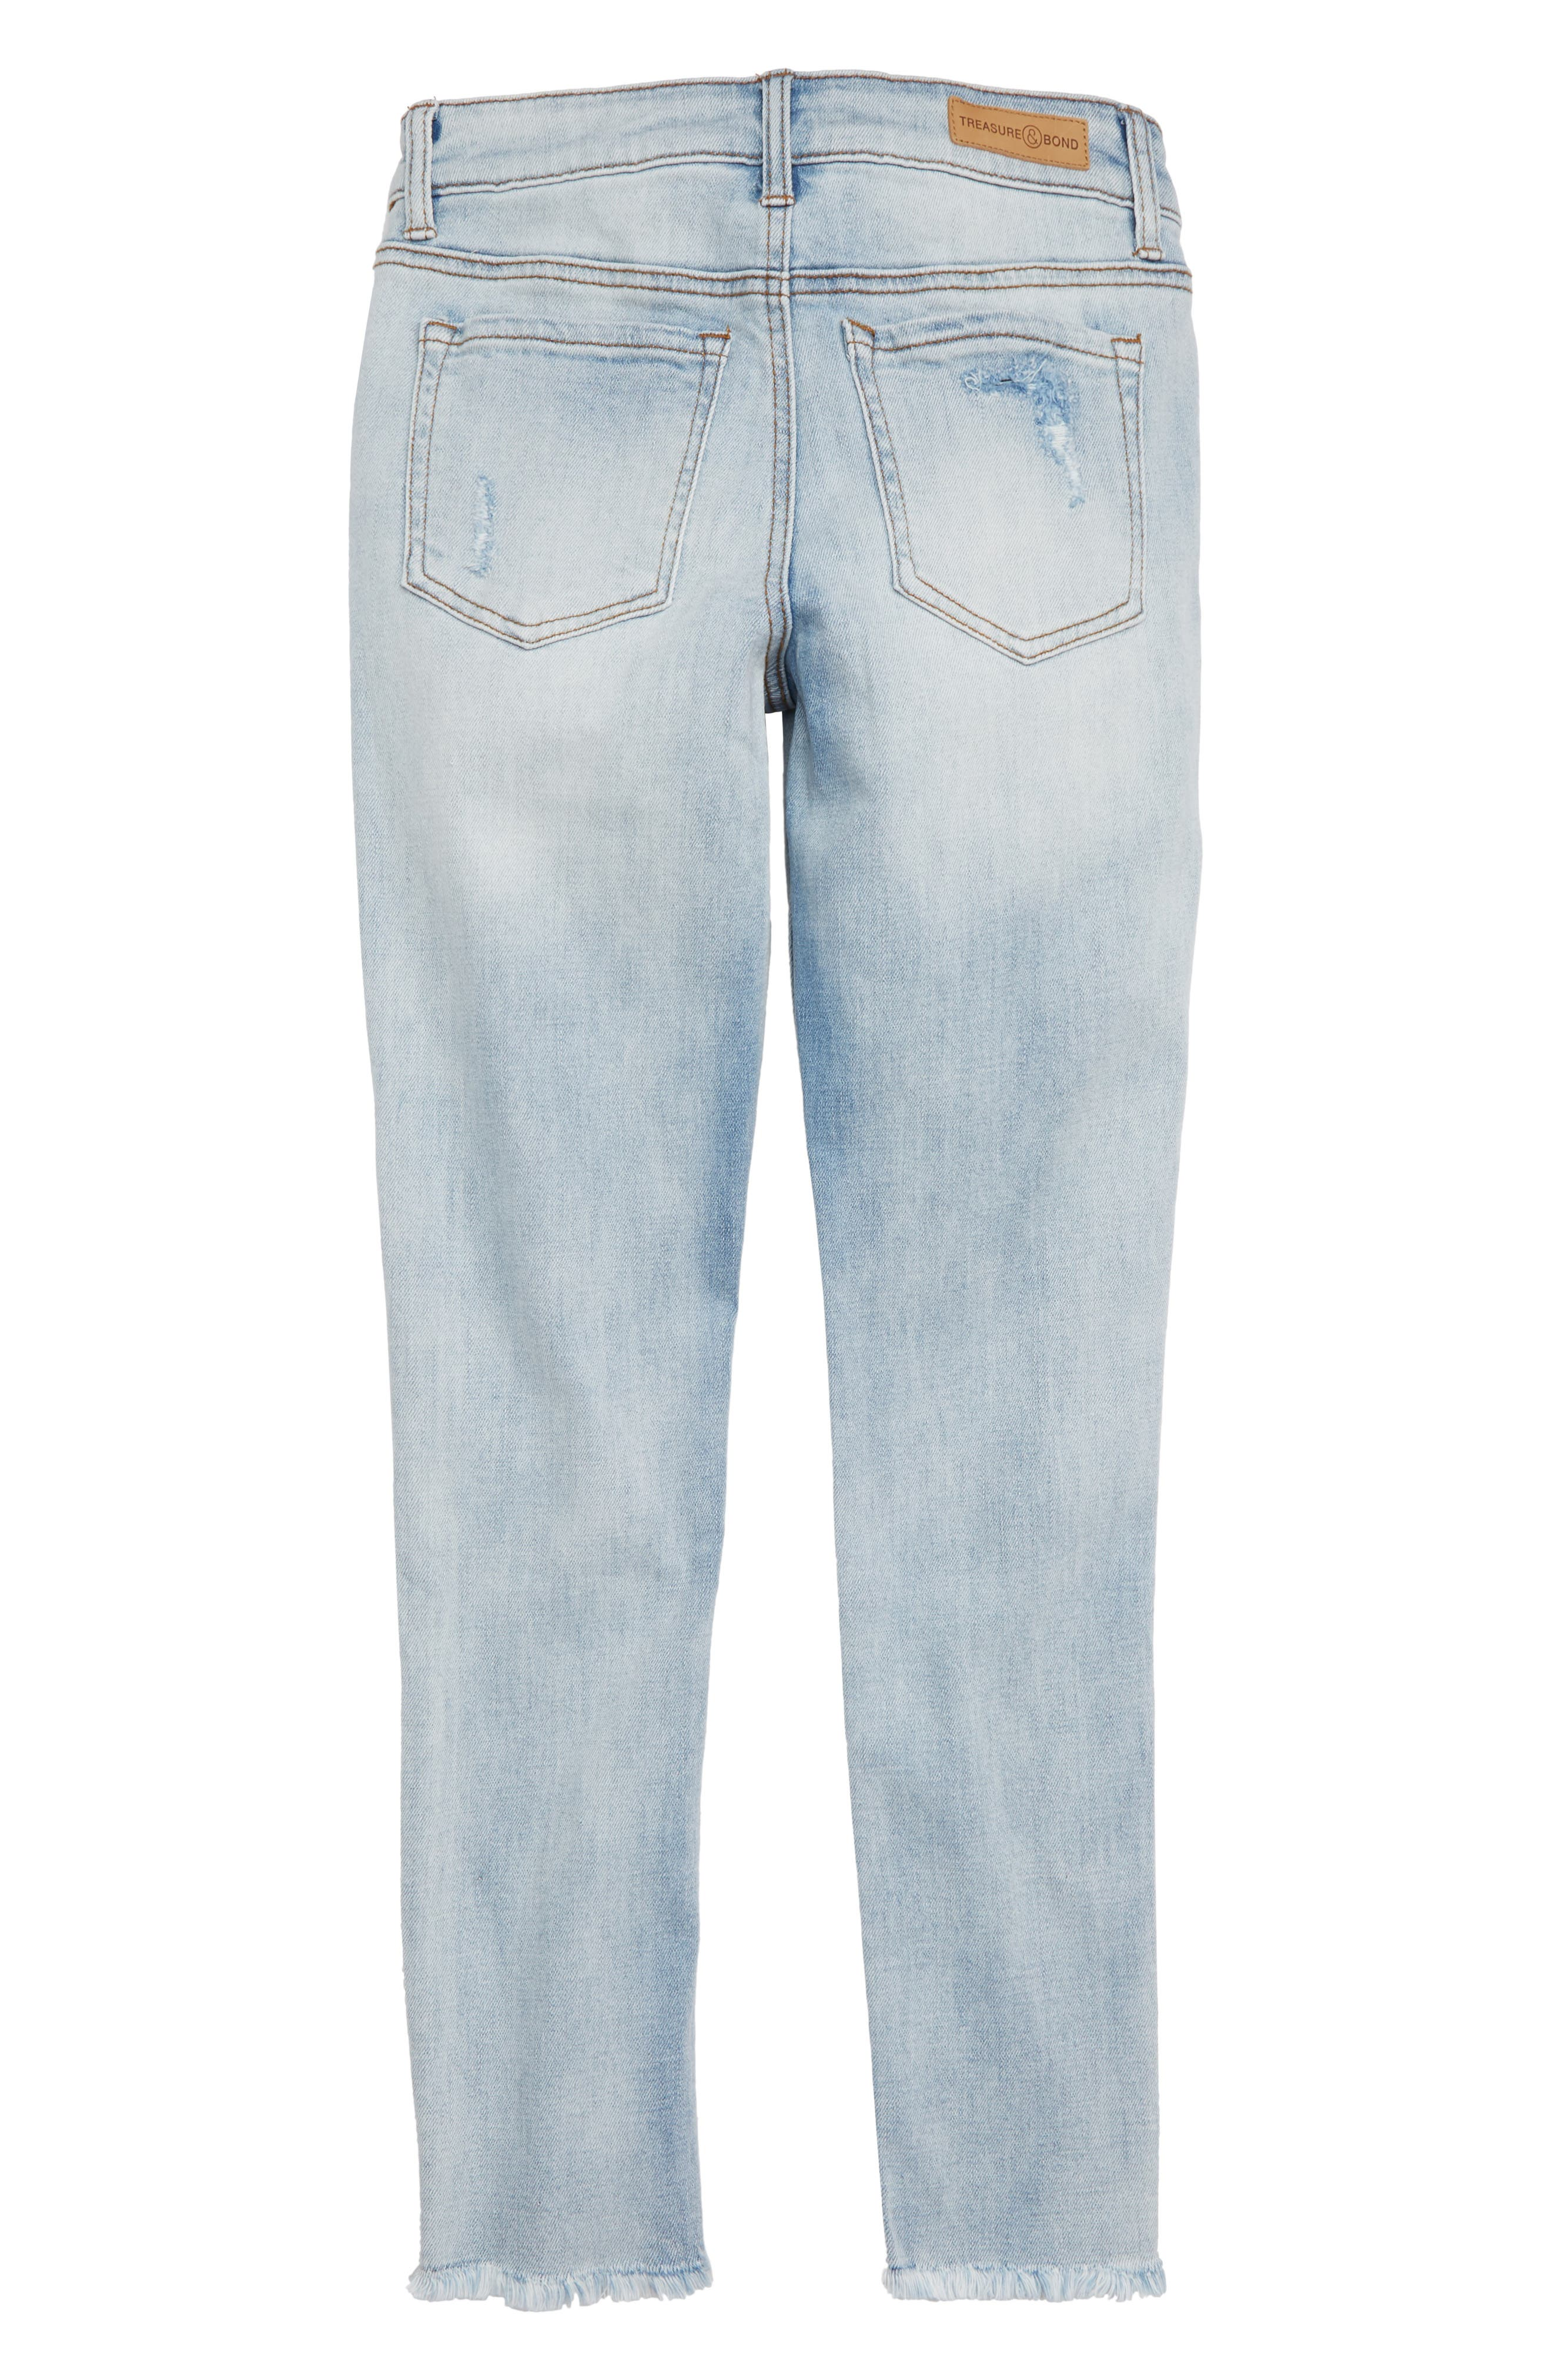 Repaired Girlfriend Jeans,                             Alternate thumbnail 2, color,                             Faded Wash